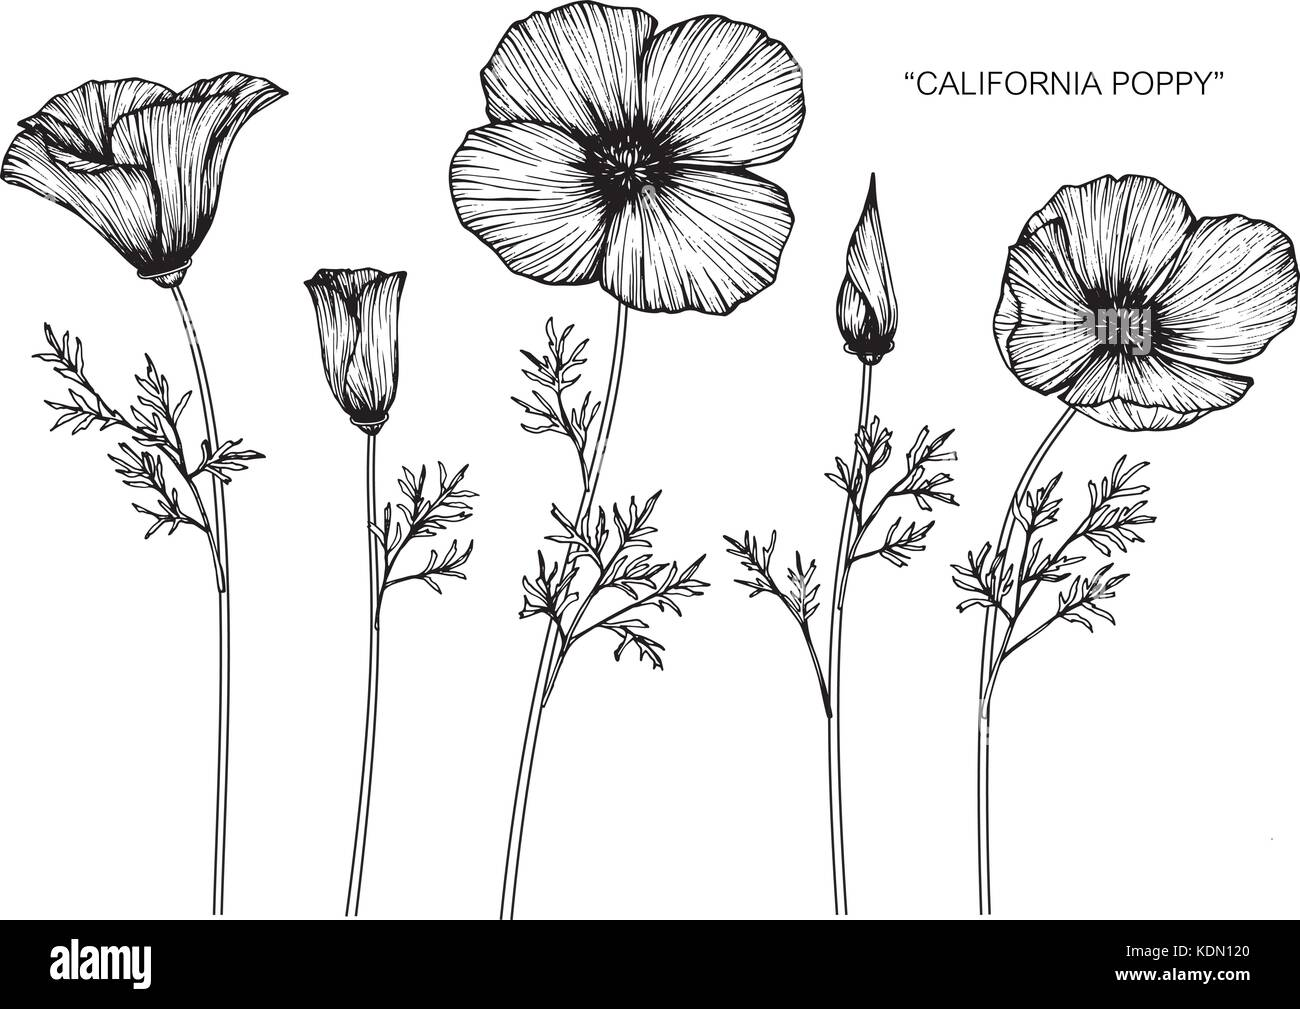 California poppy flower drawing  illustration. Black and white with line art. Stock Vector